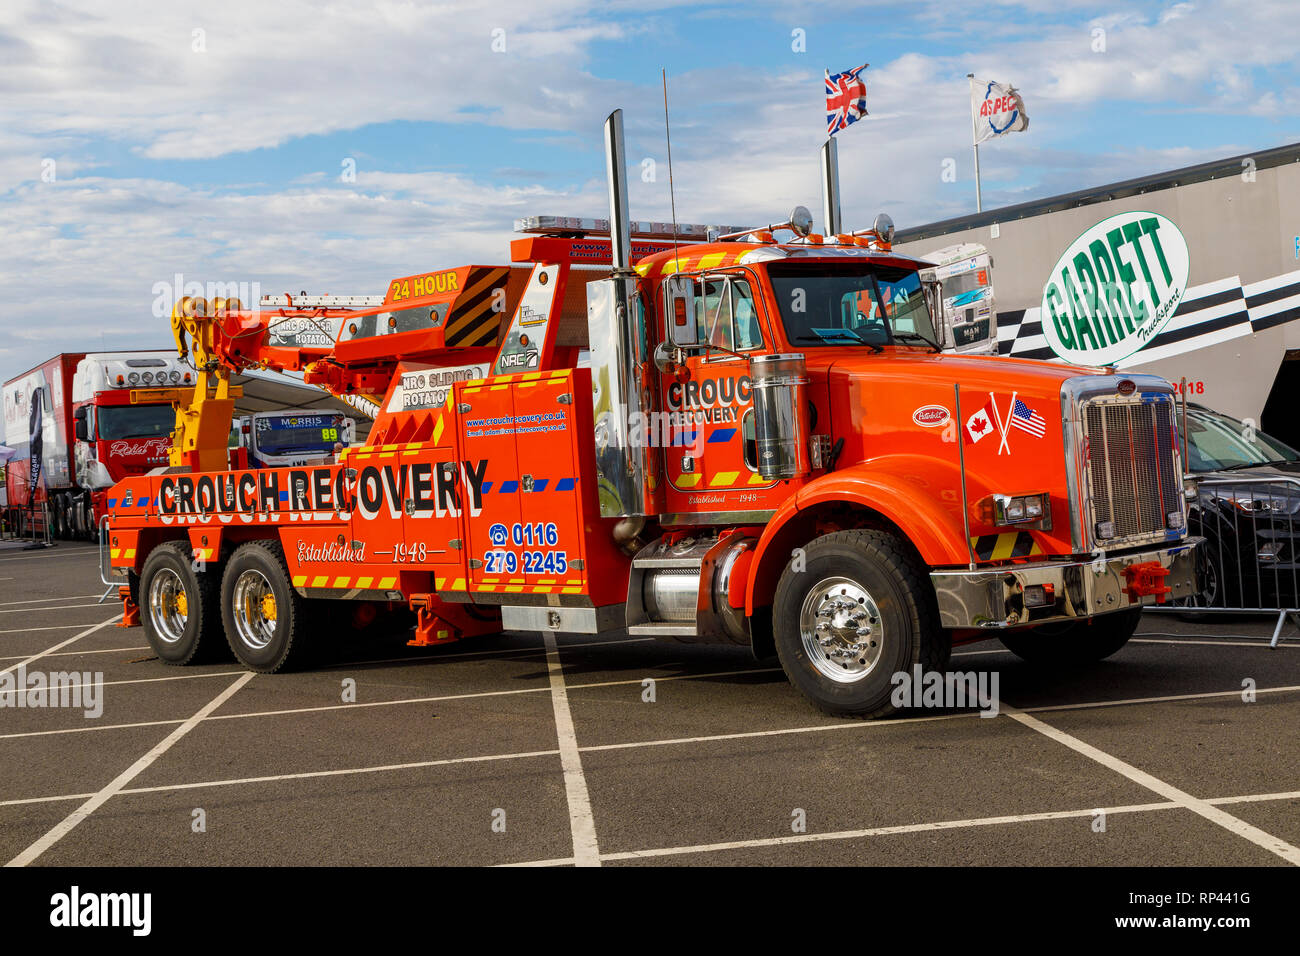 hight resolution of crouch recovery peterbilt hgv breakdown truck on duty at the snetterton 2018 truck racing championship meeting norfolk uk